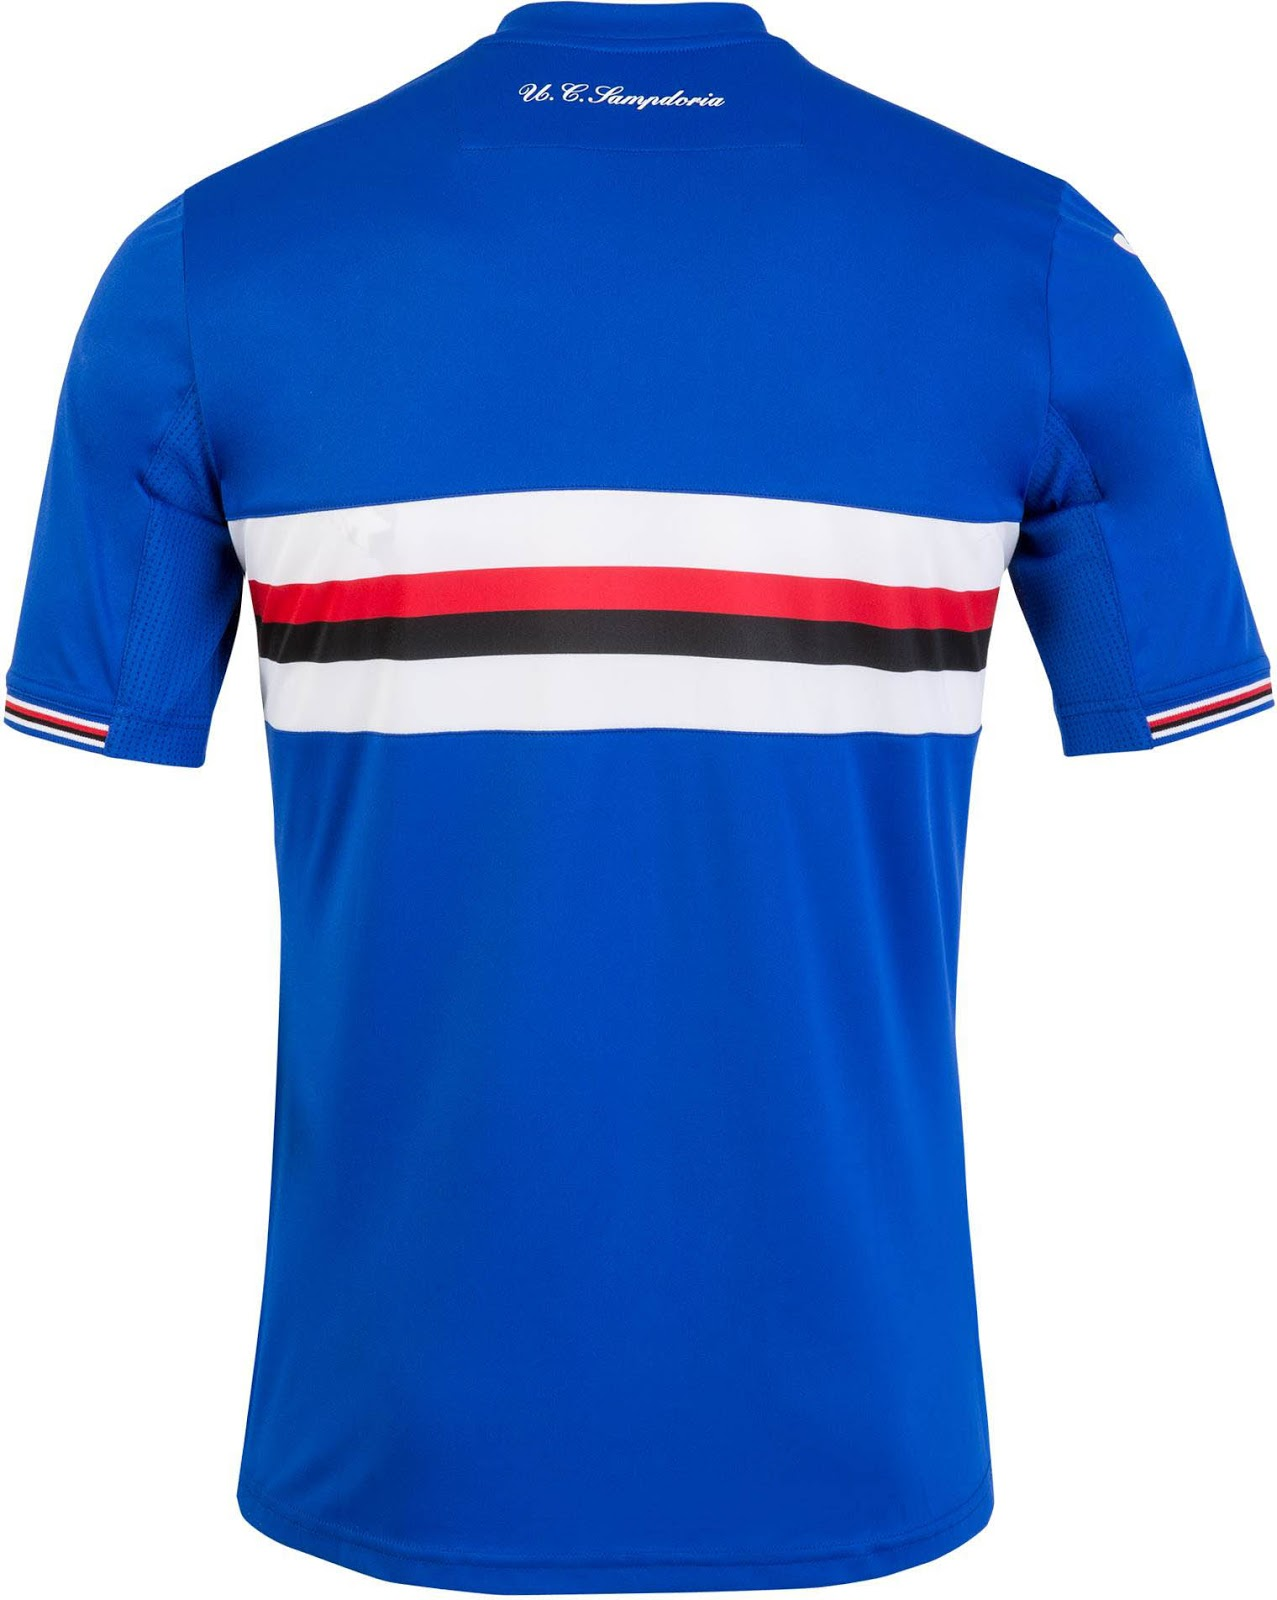 sampdoria-16-17-kits-home-back